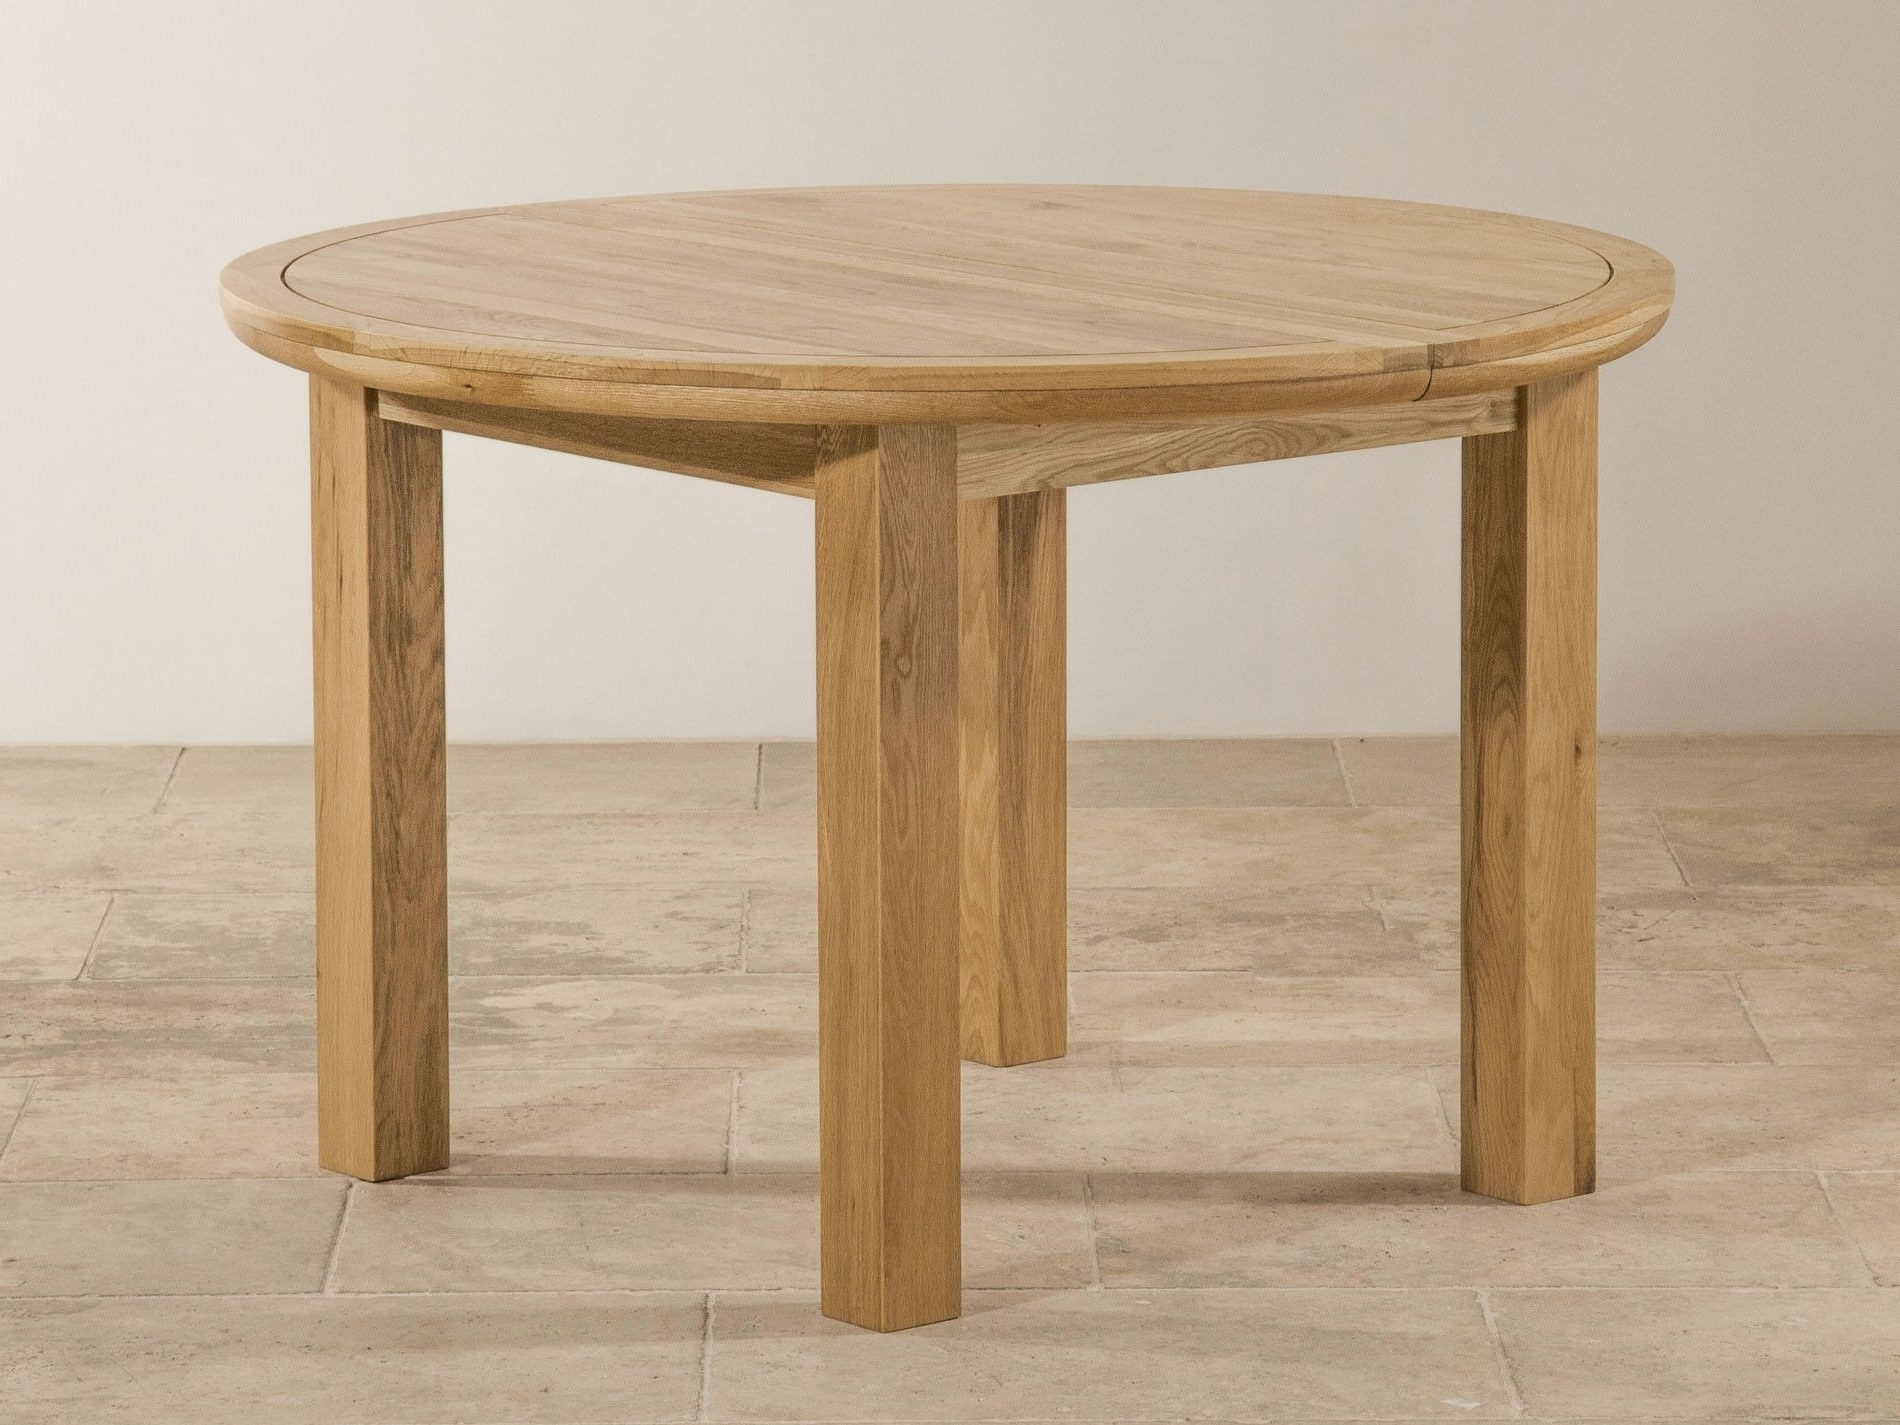 Round Oak Extendable Dining Tables And Chairs Regarding 2018 The 24 Elegant Solid Oak Round Dining Table 6 Chairs (View 20 of 25)